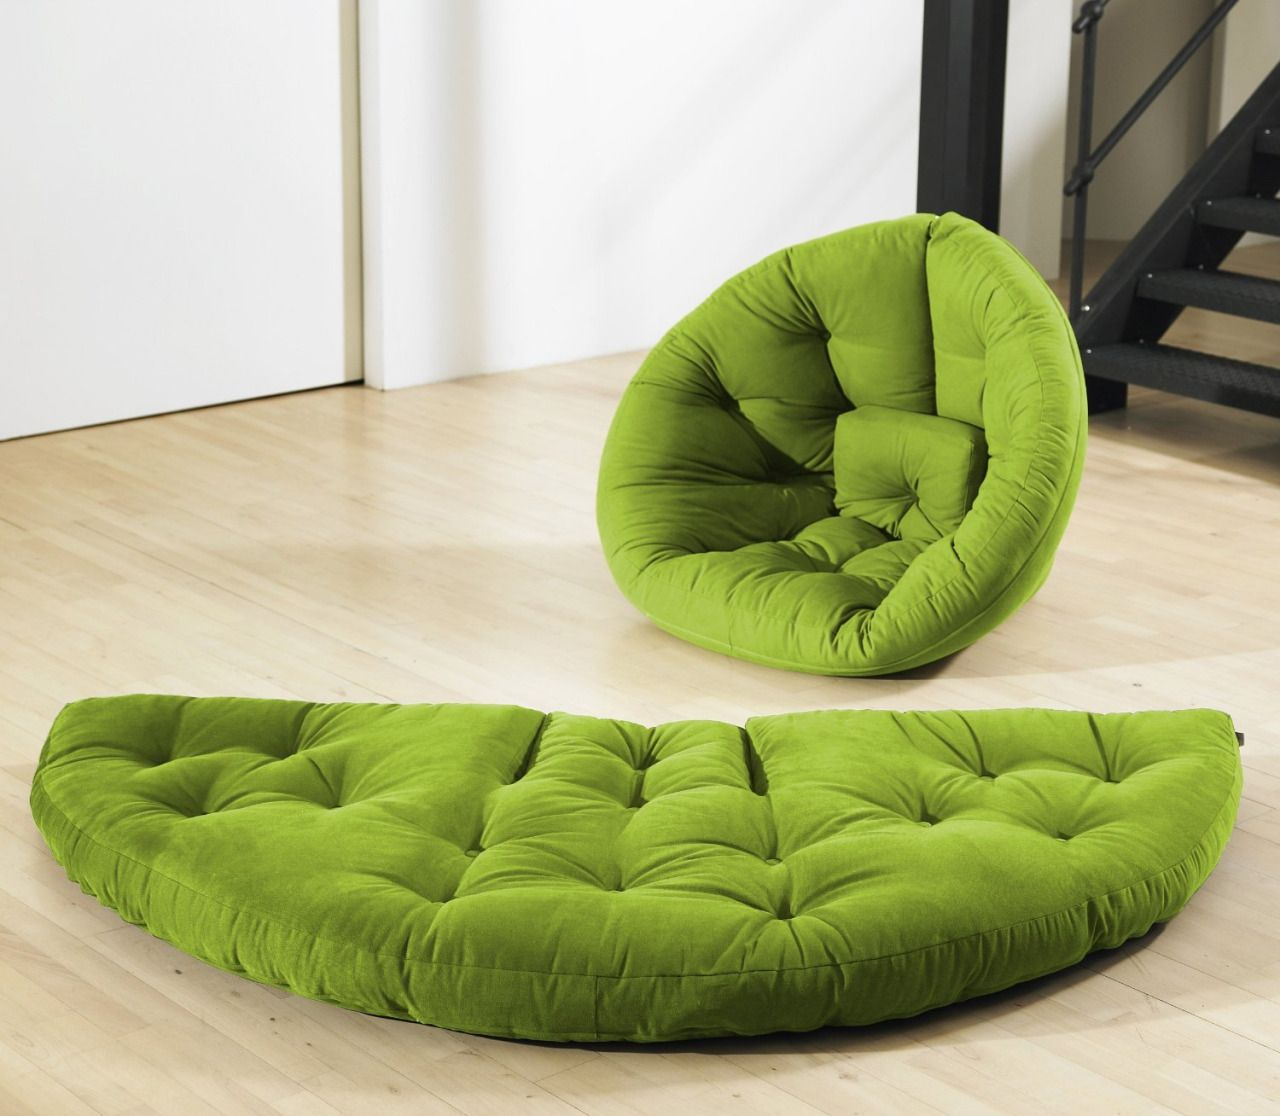 In A Matter Of Mere Seconds, The Chair Can Be Converted Into A Half Circle  Shaped Mattress.